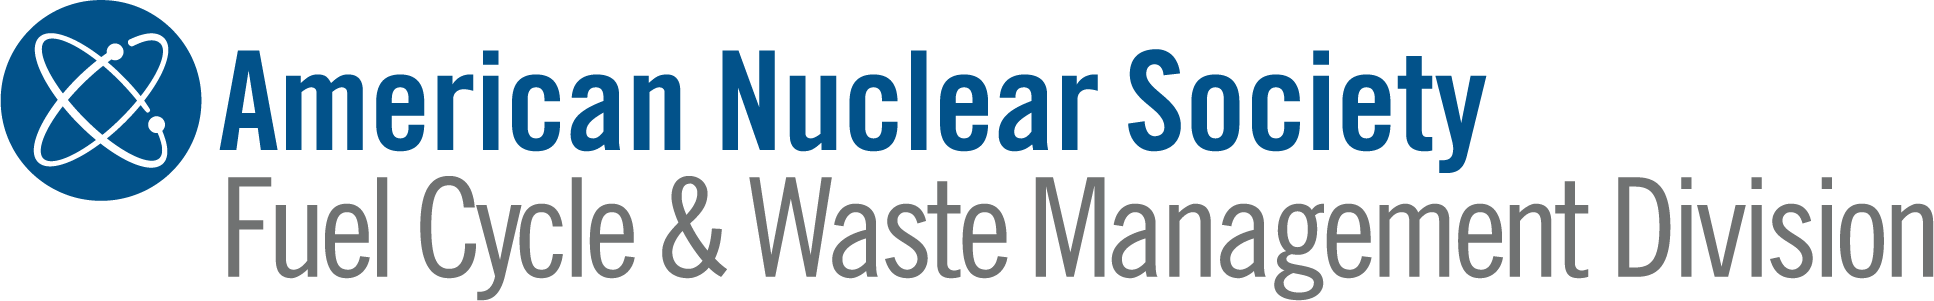 Fuel Cycle & Waste Management